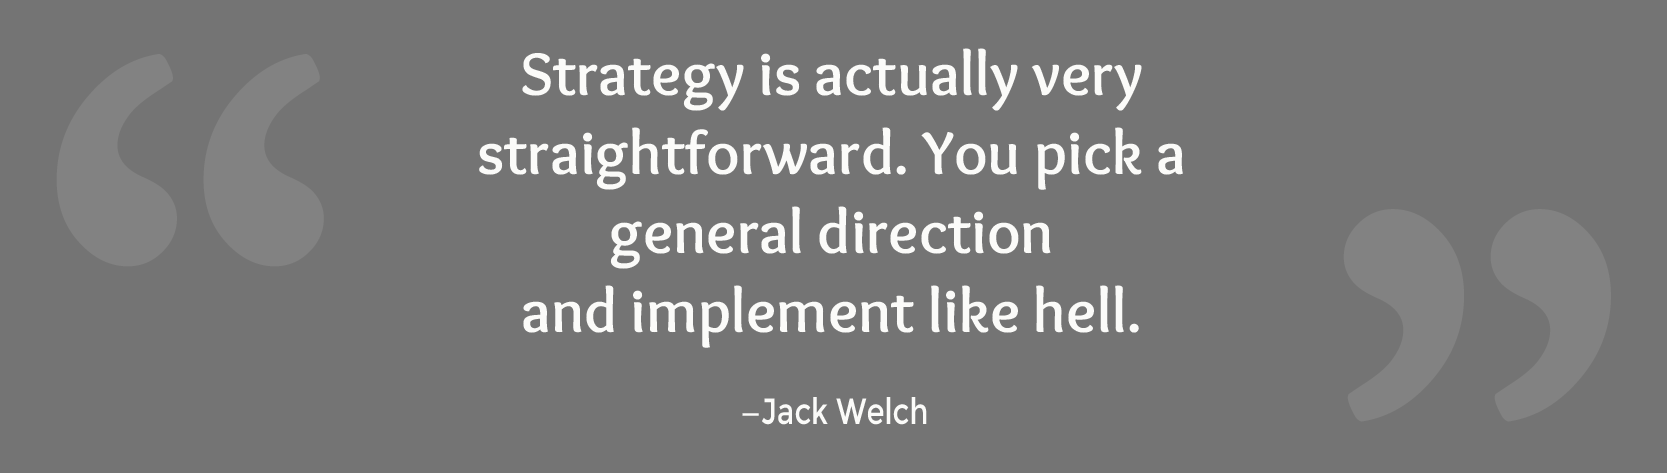 consulting-strategy-quotes-02.png